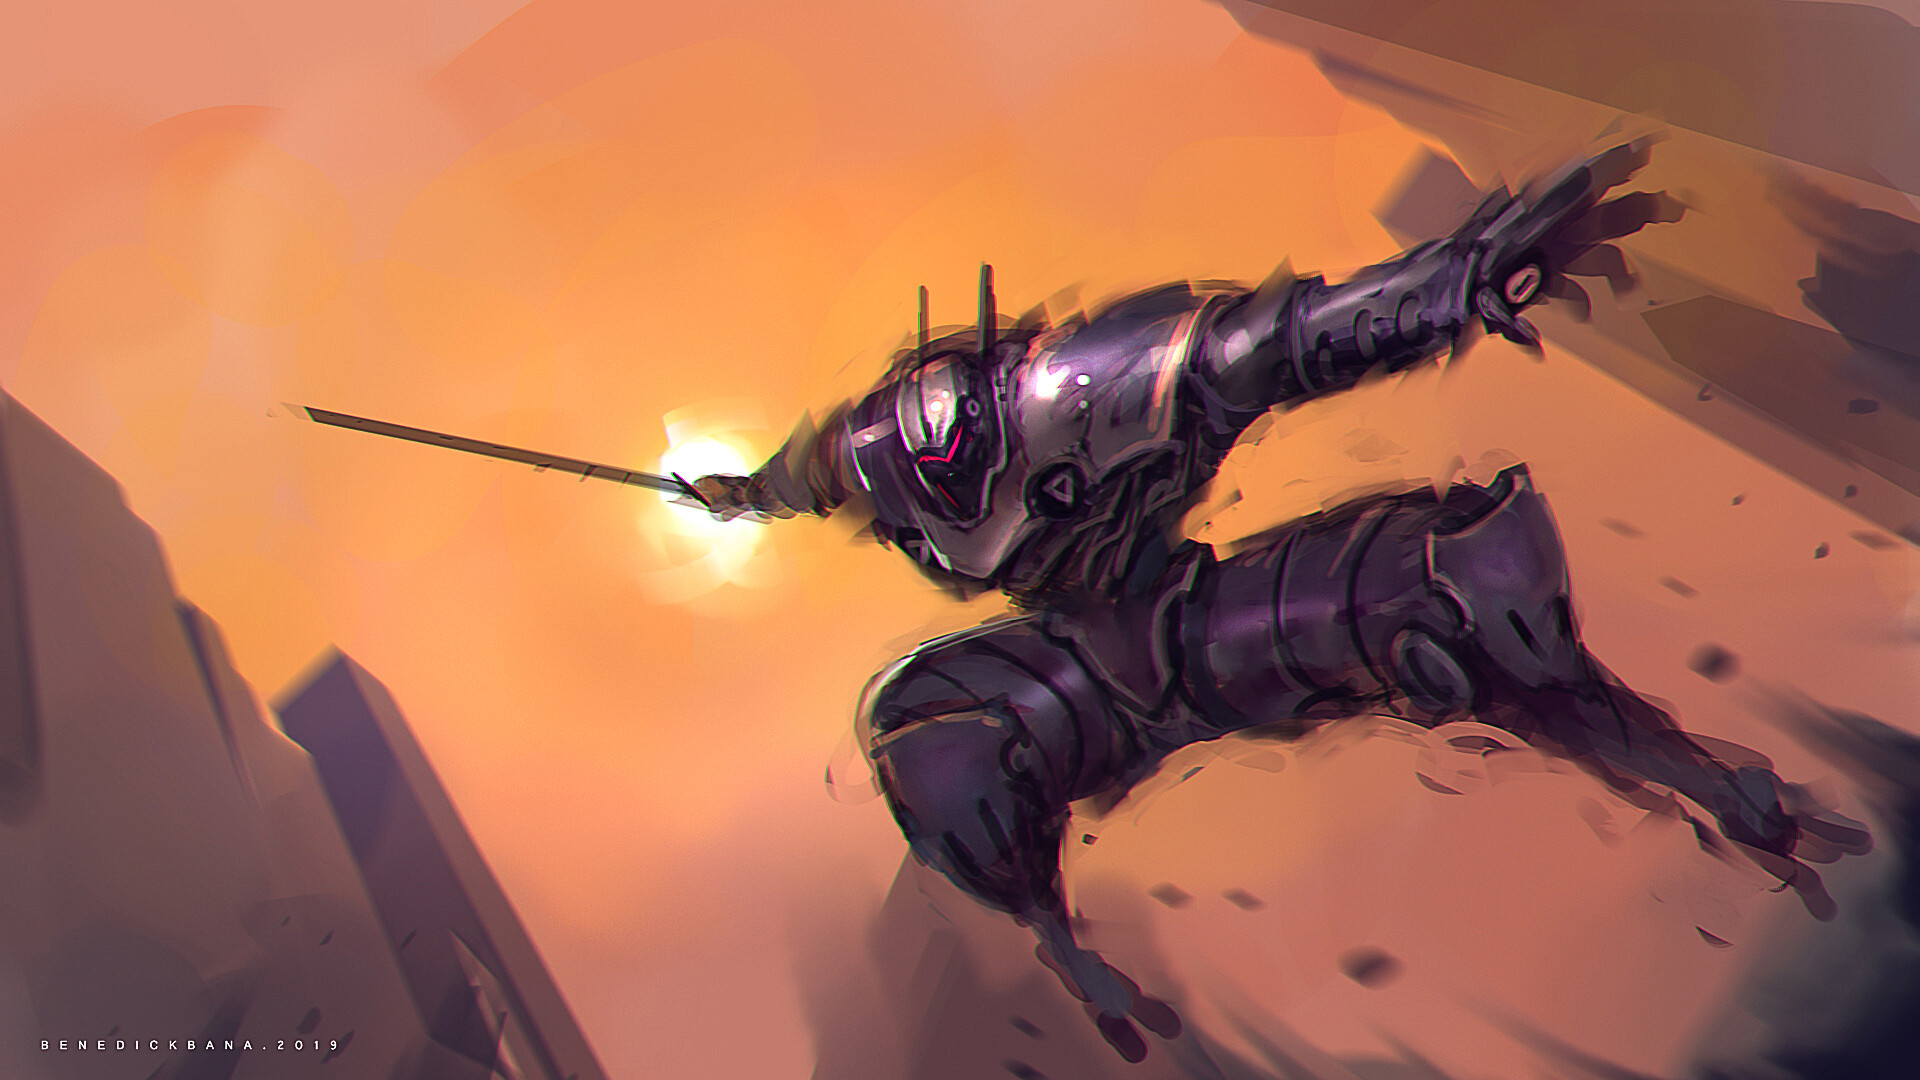 Benedick bana attack from above final lores